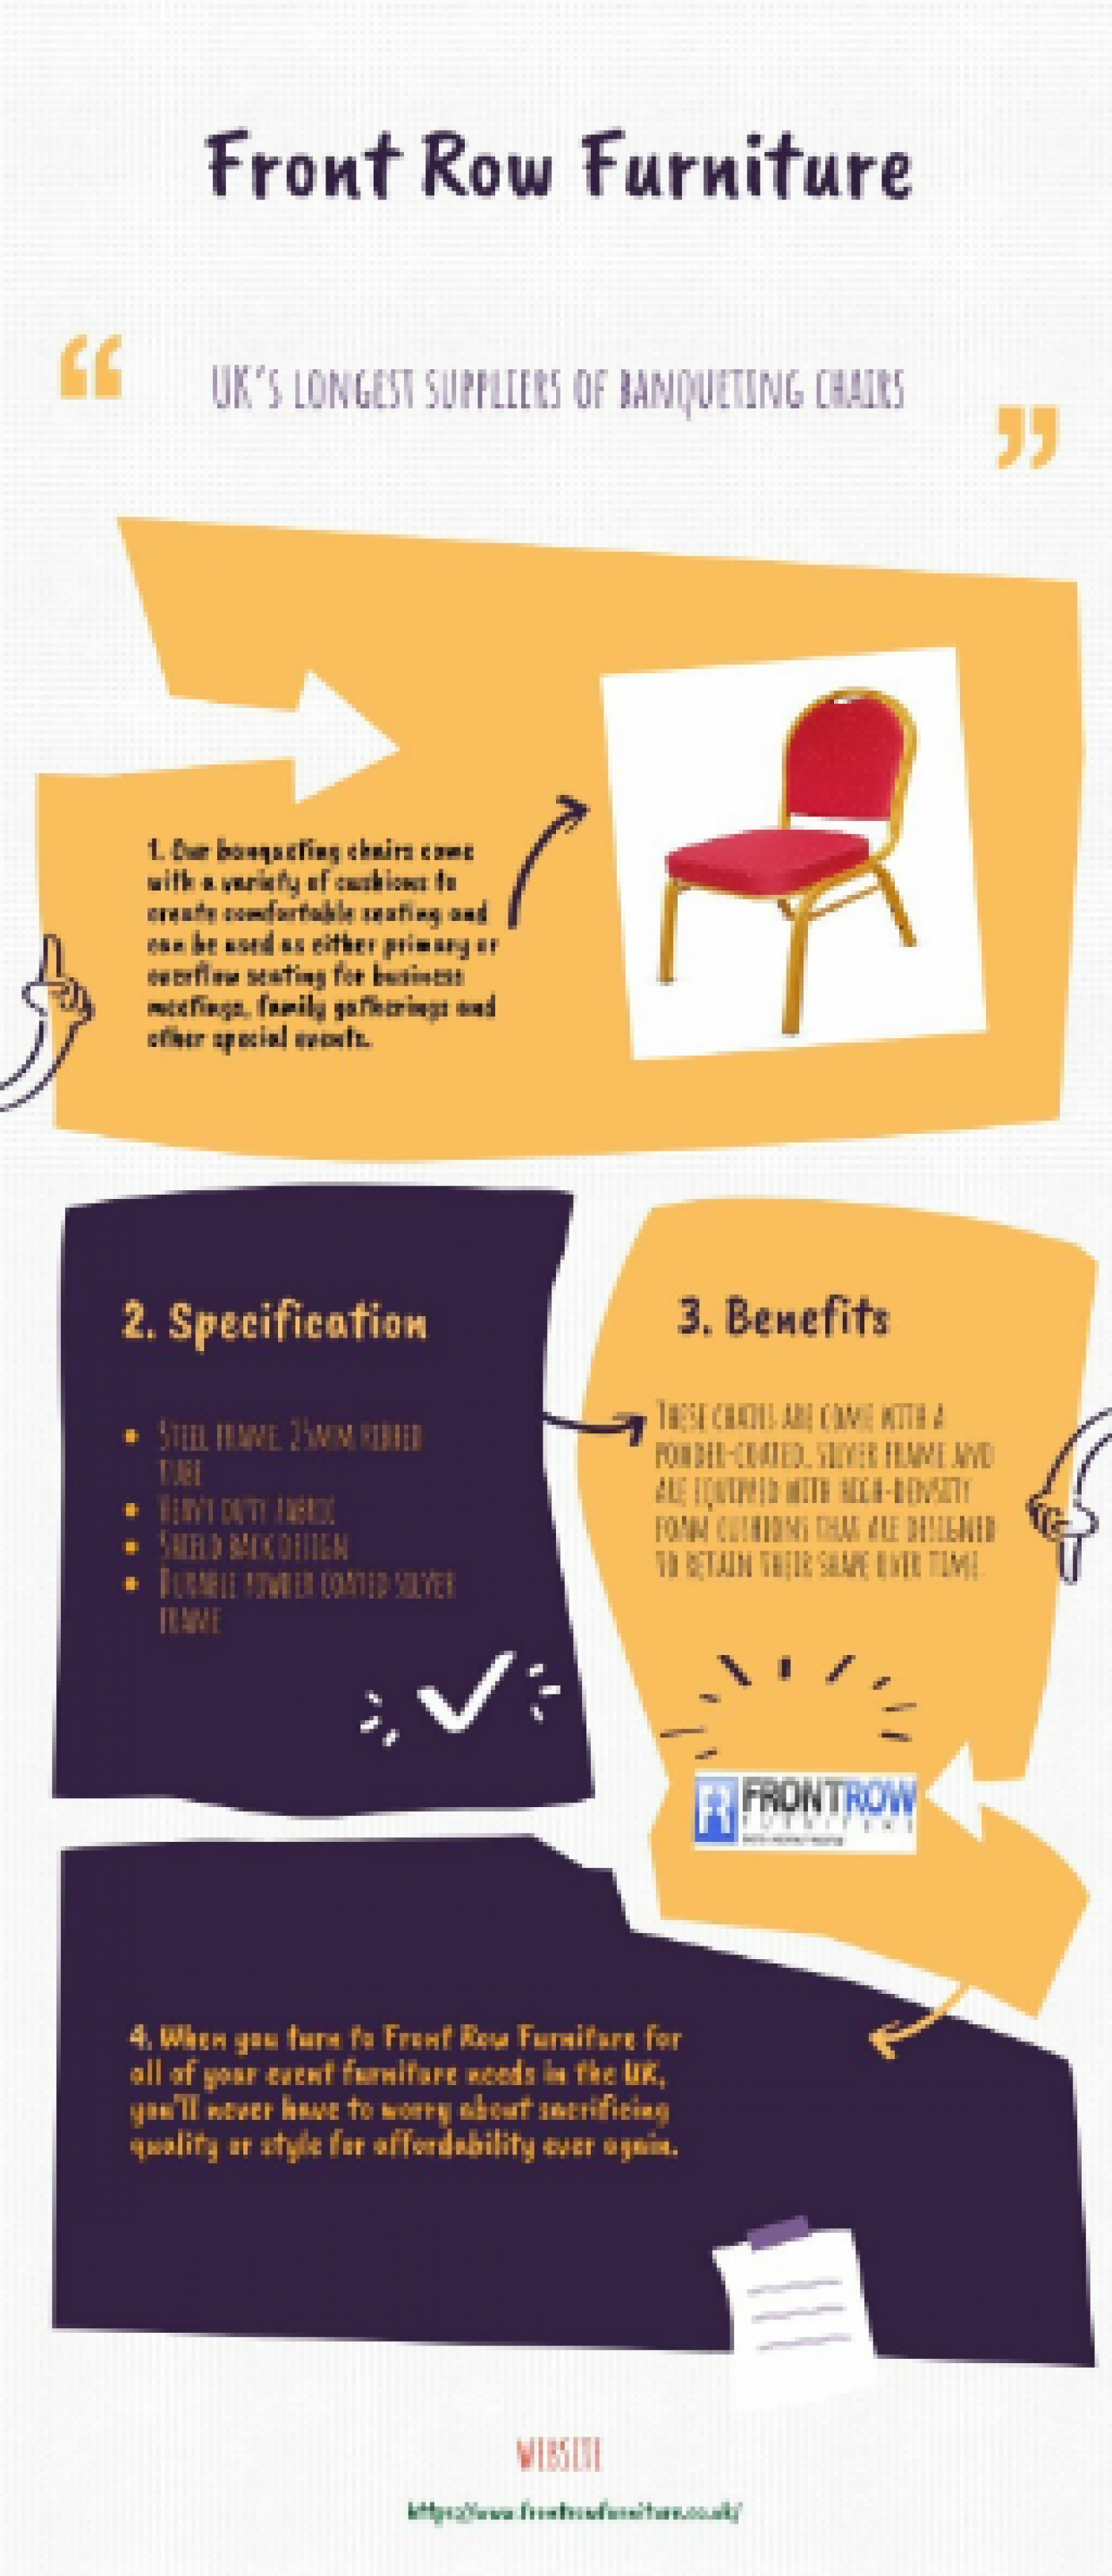 Shop Online Banqueting Chairs at Front Row Furniture Infographic